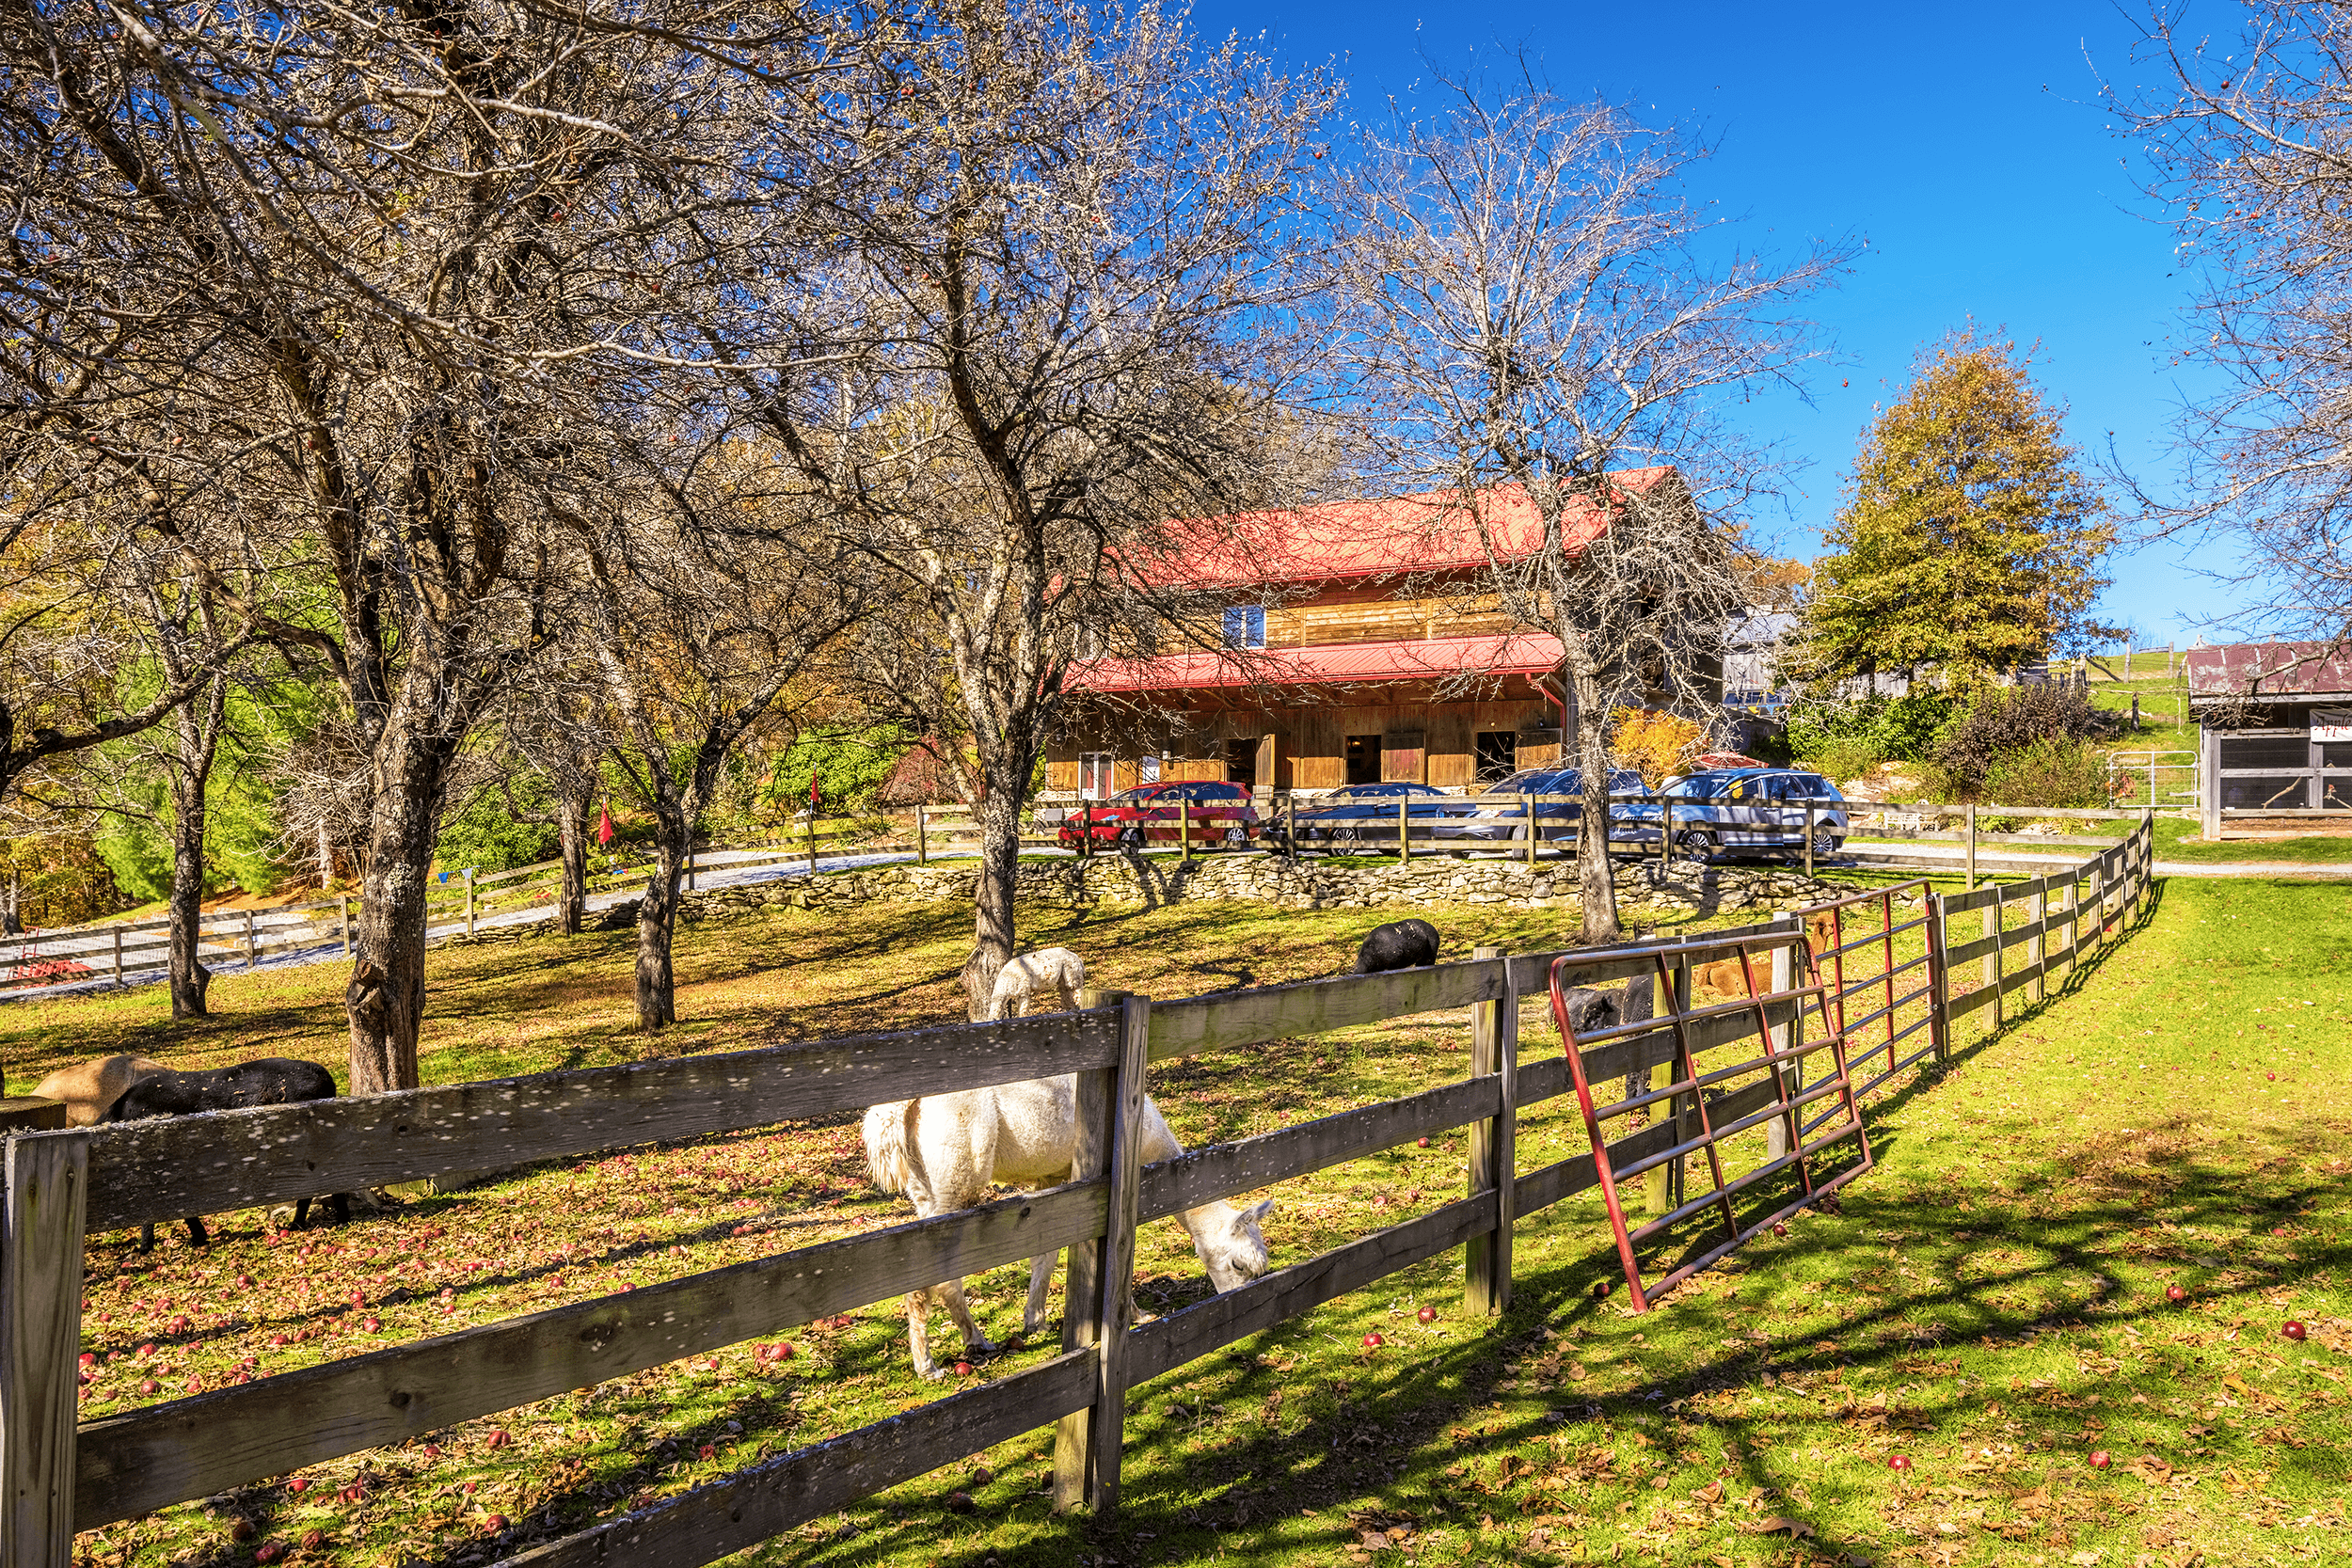 The main barn is the starting point for the guided tours. While waiting for the tour to begin, you can watch alpacas and llamas grazing under the old apple trees. The chicken coop next to the barn provides fresh farm eggs, which are available for purchase in the store at the barn.